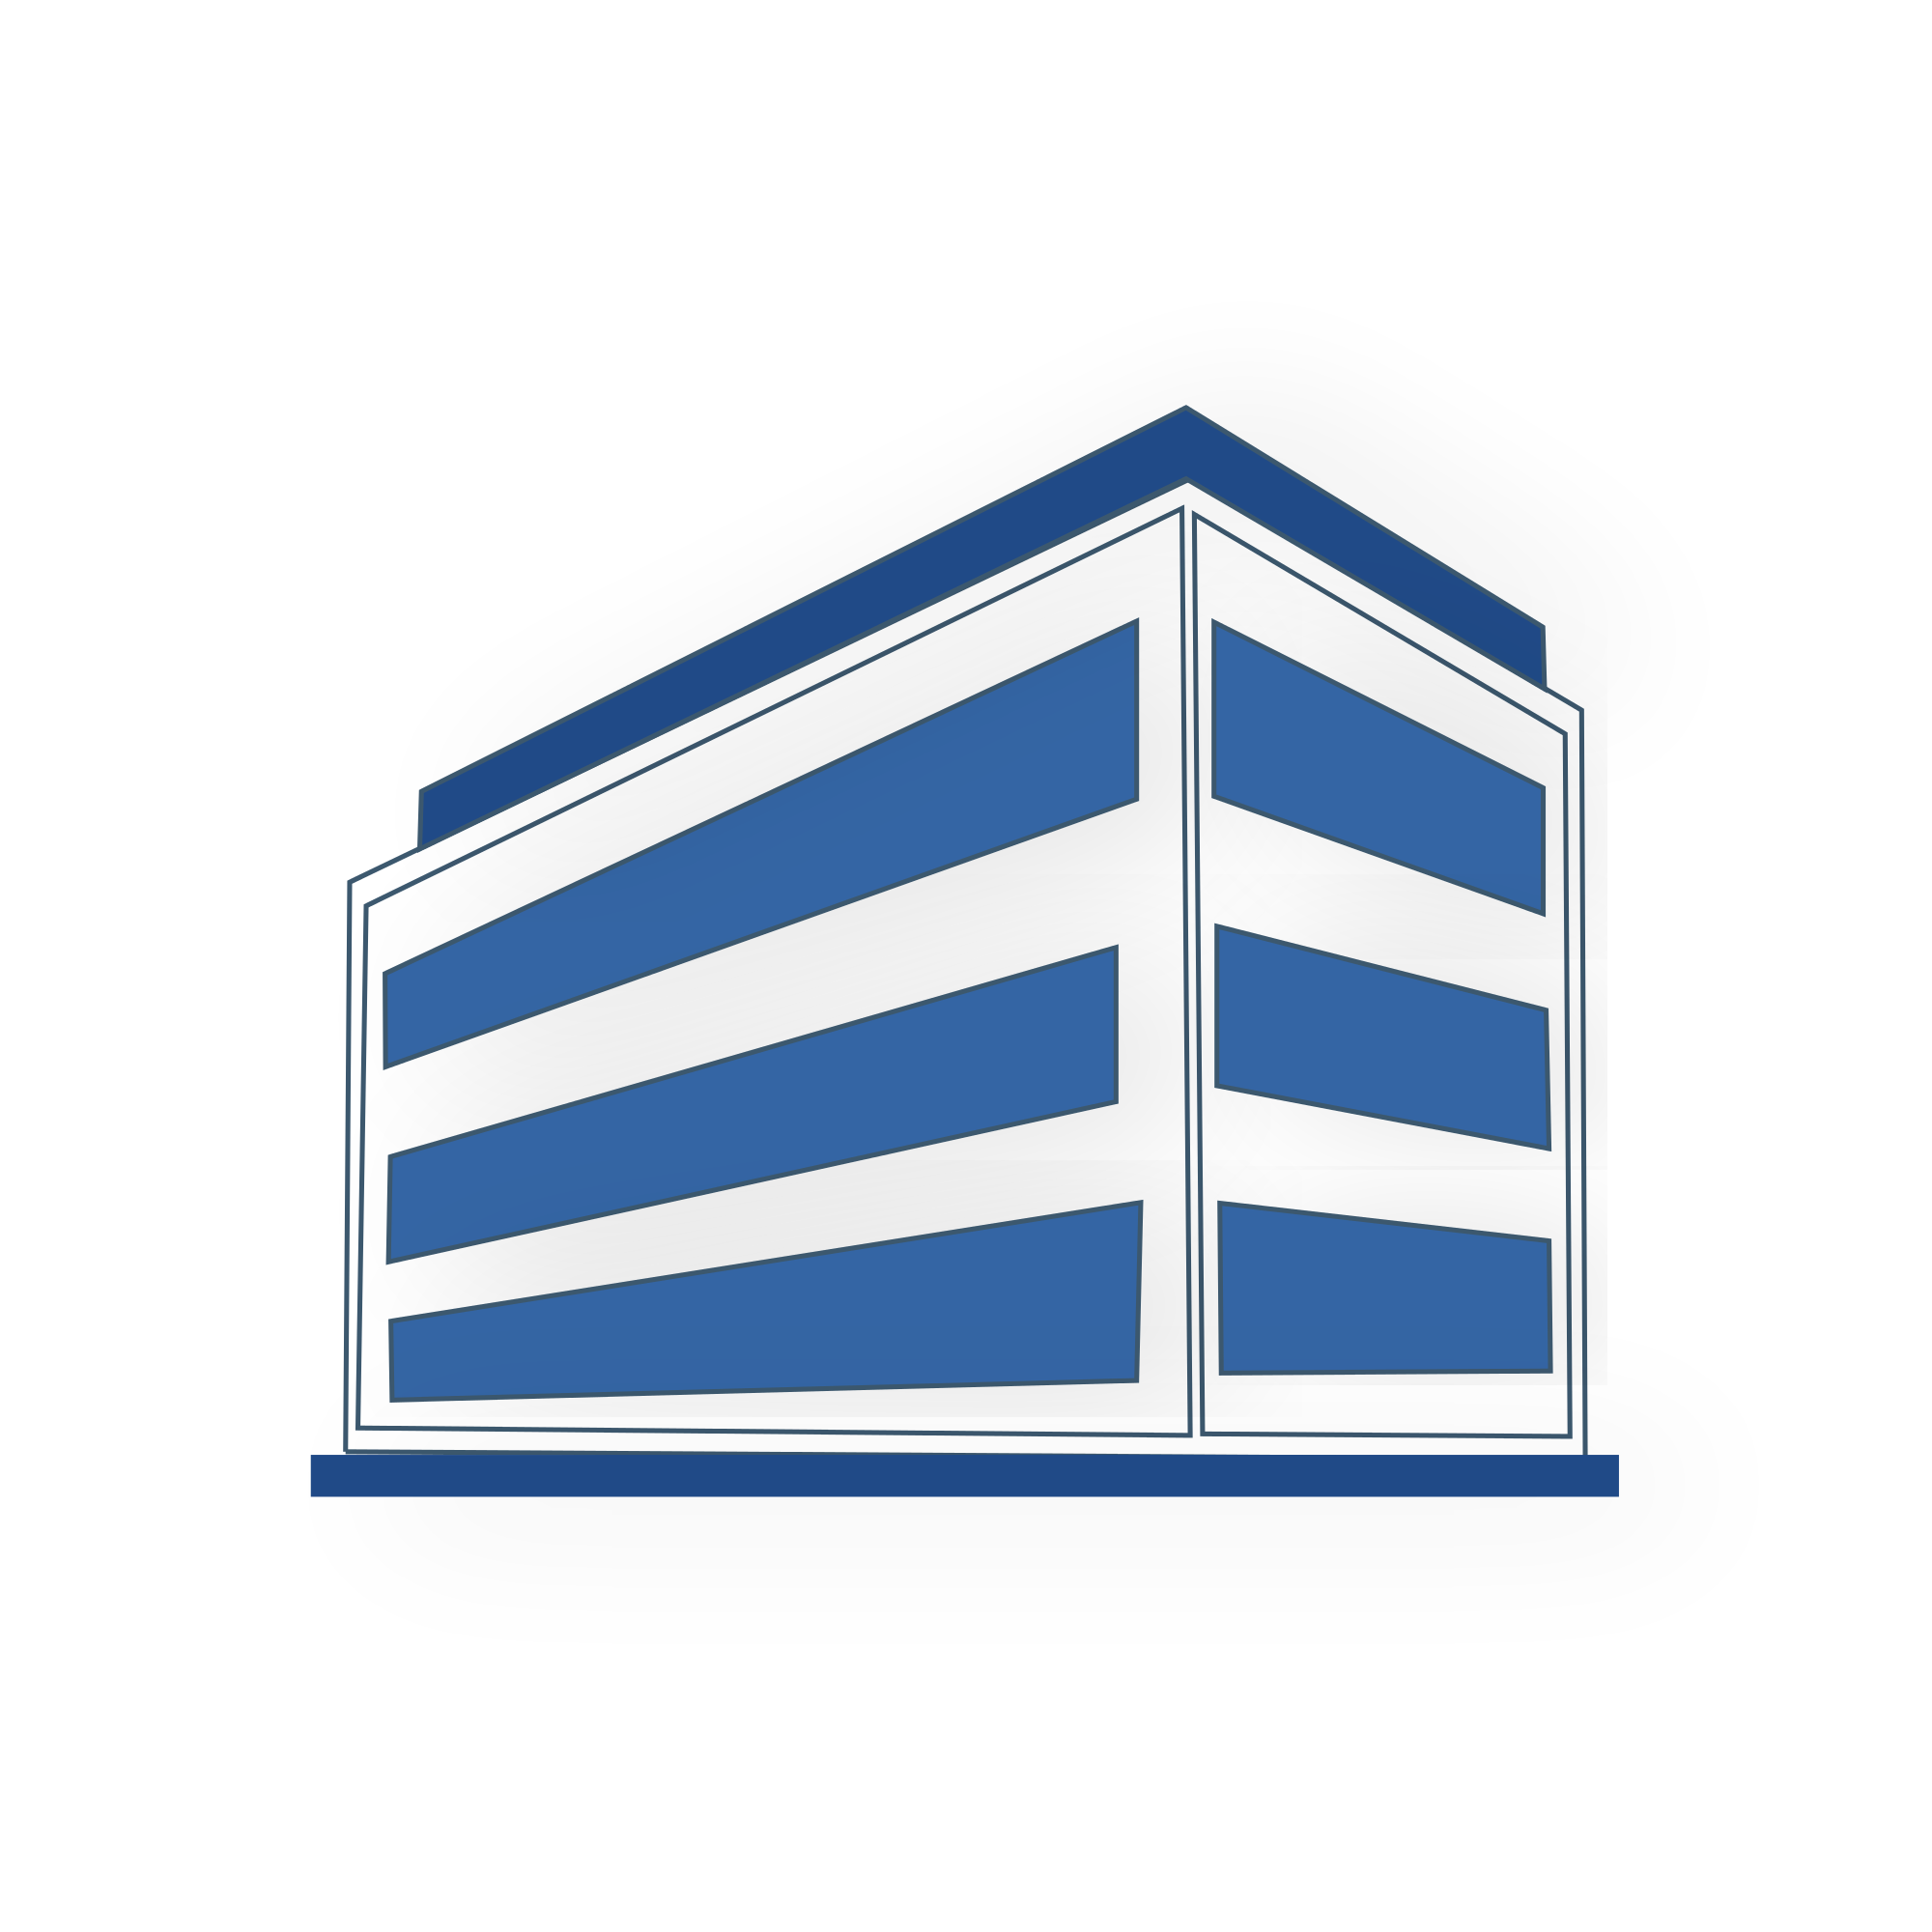 Library clipart office building. File svg wikimedia commons